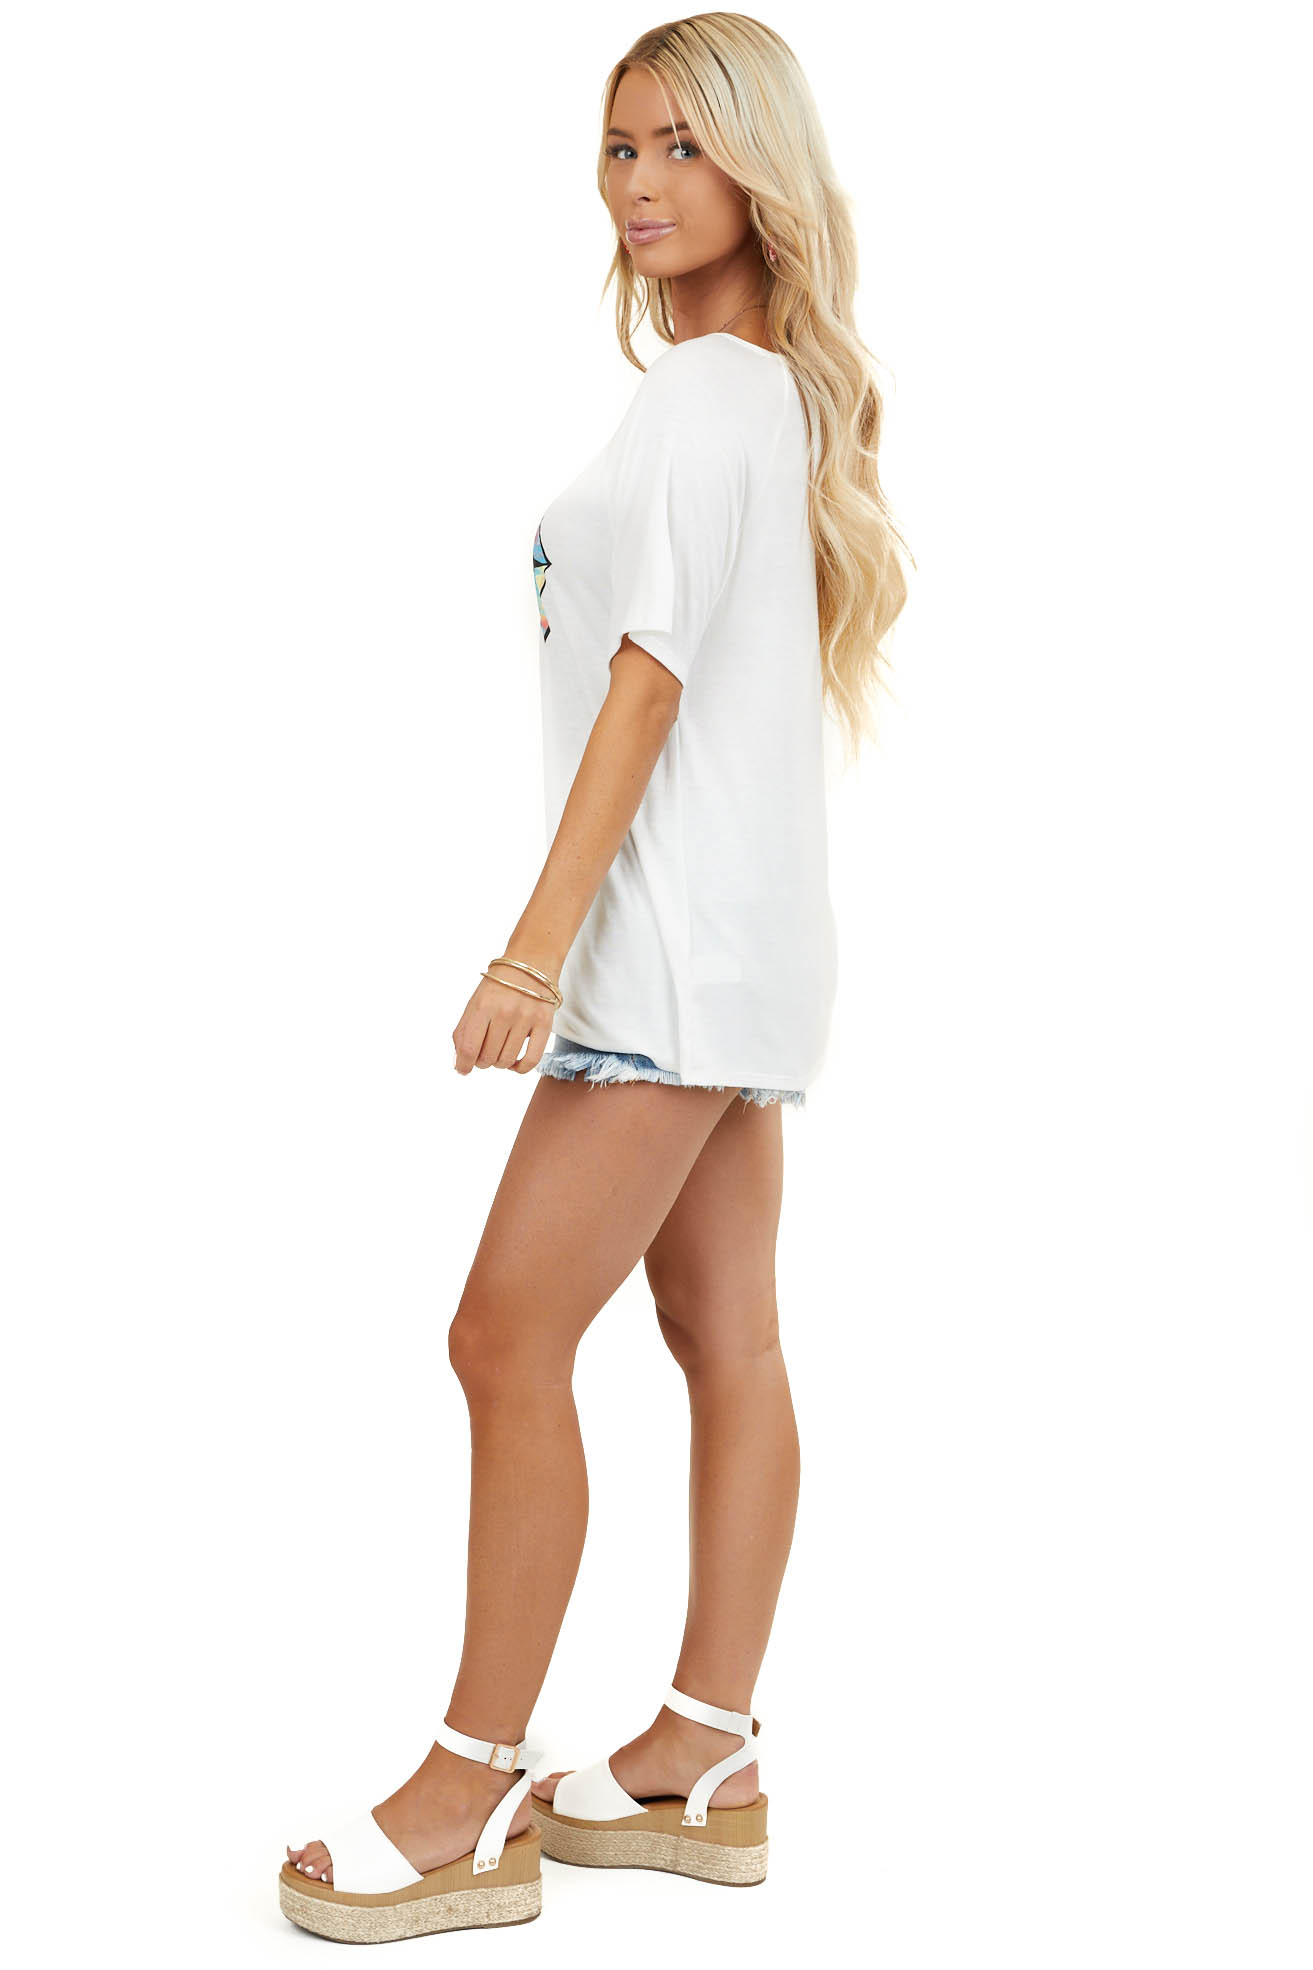 White Short Sleeve Top with Multicolor Tie Dye Lip Graphic